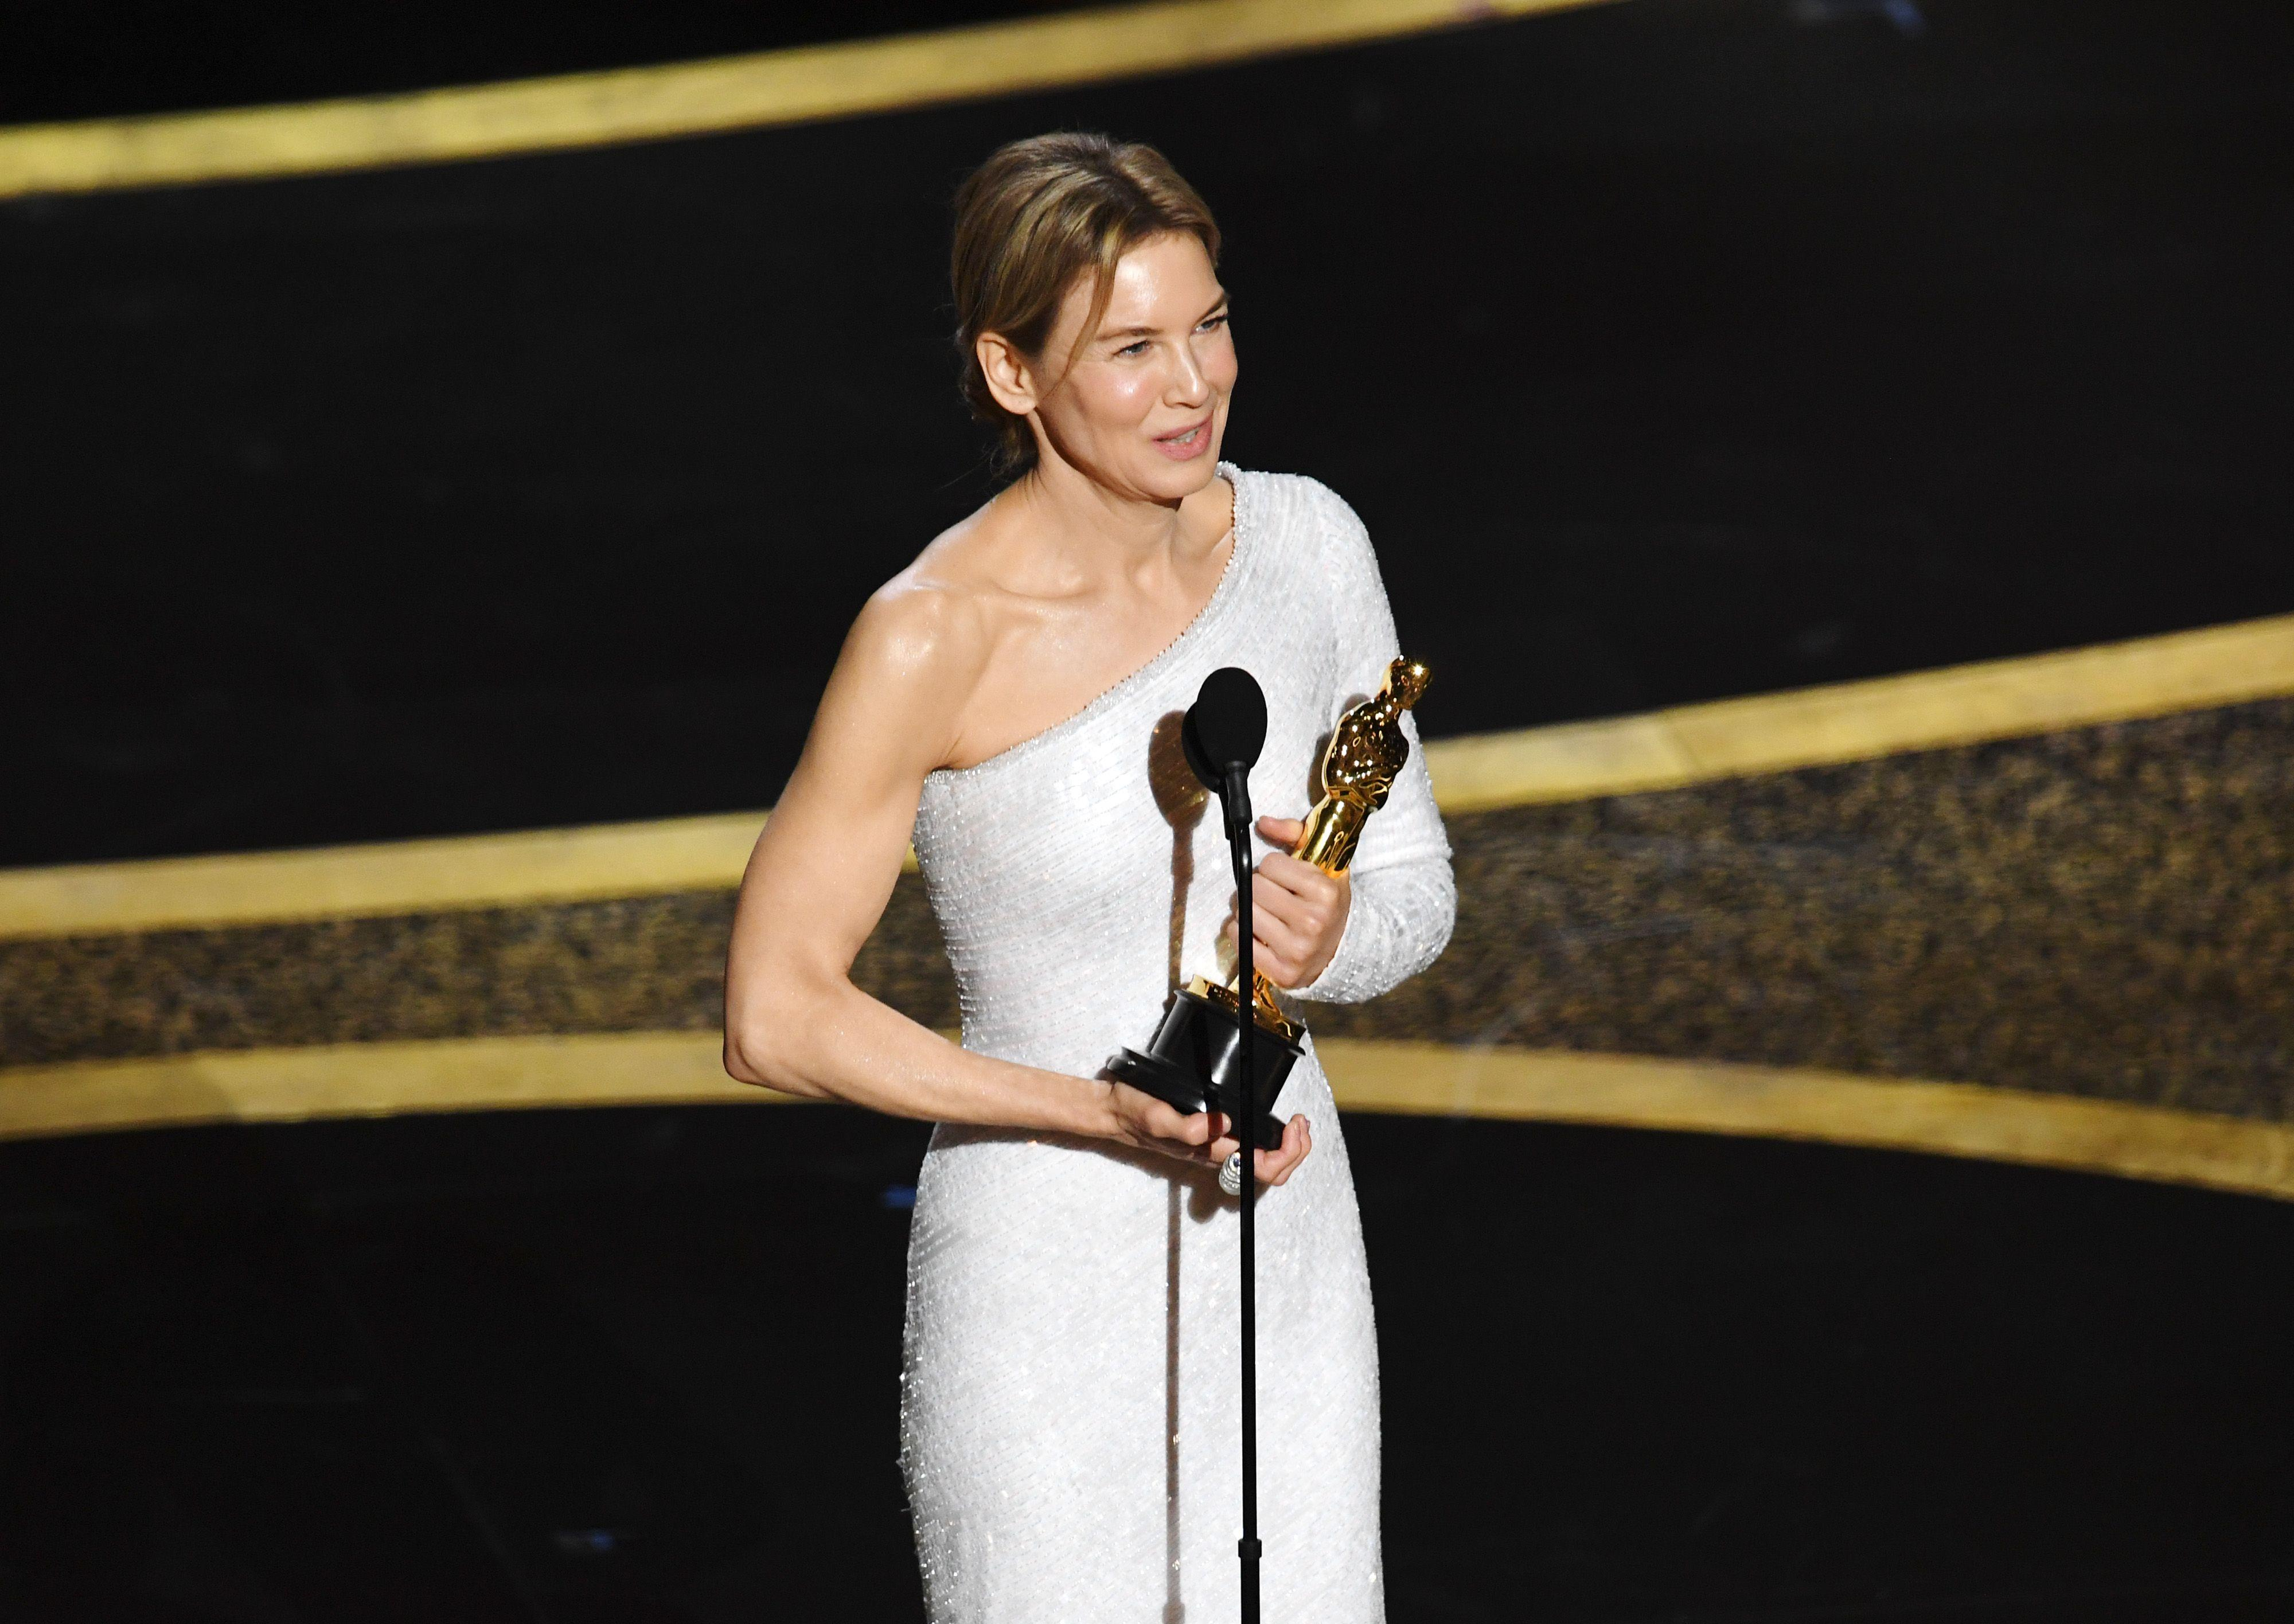 Renee Zellwegger Wins Best Actress Oscar For 'Judy': 'Our Heroes